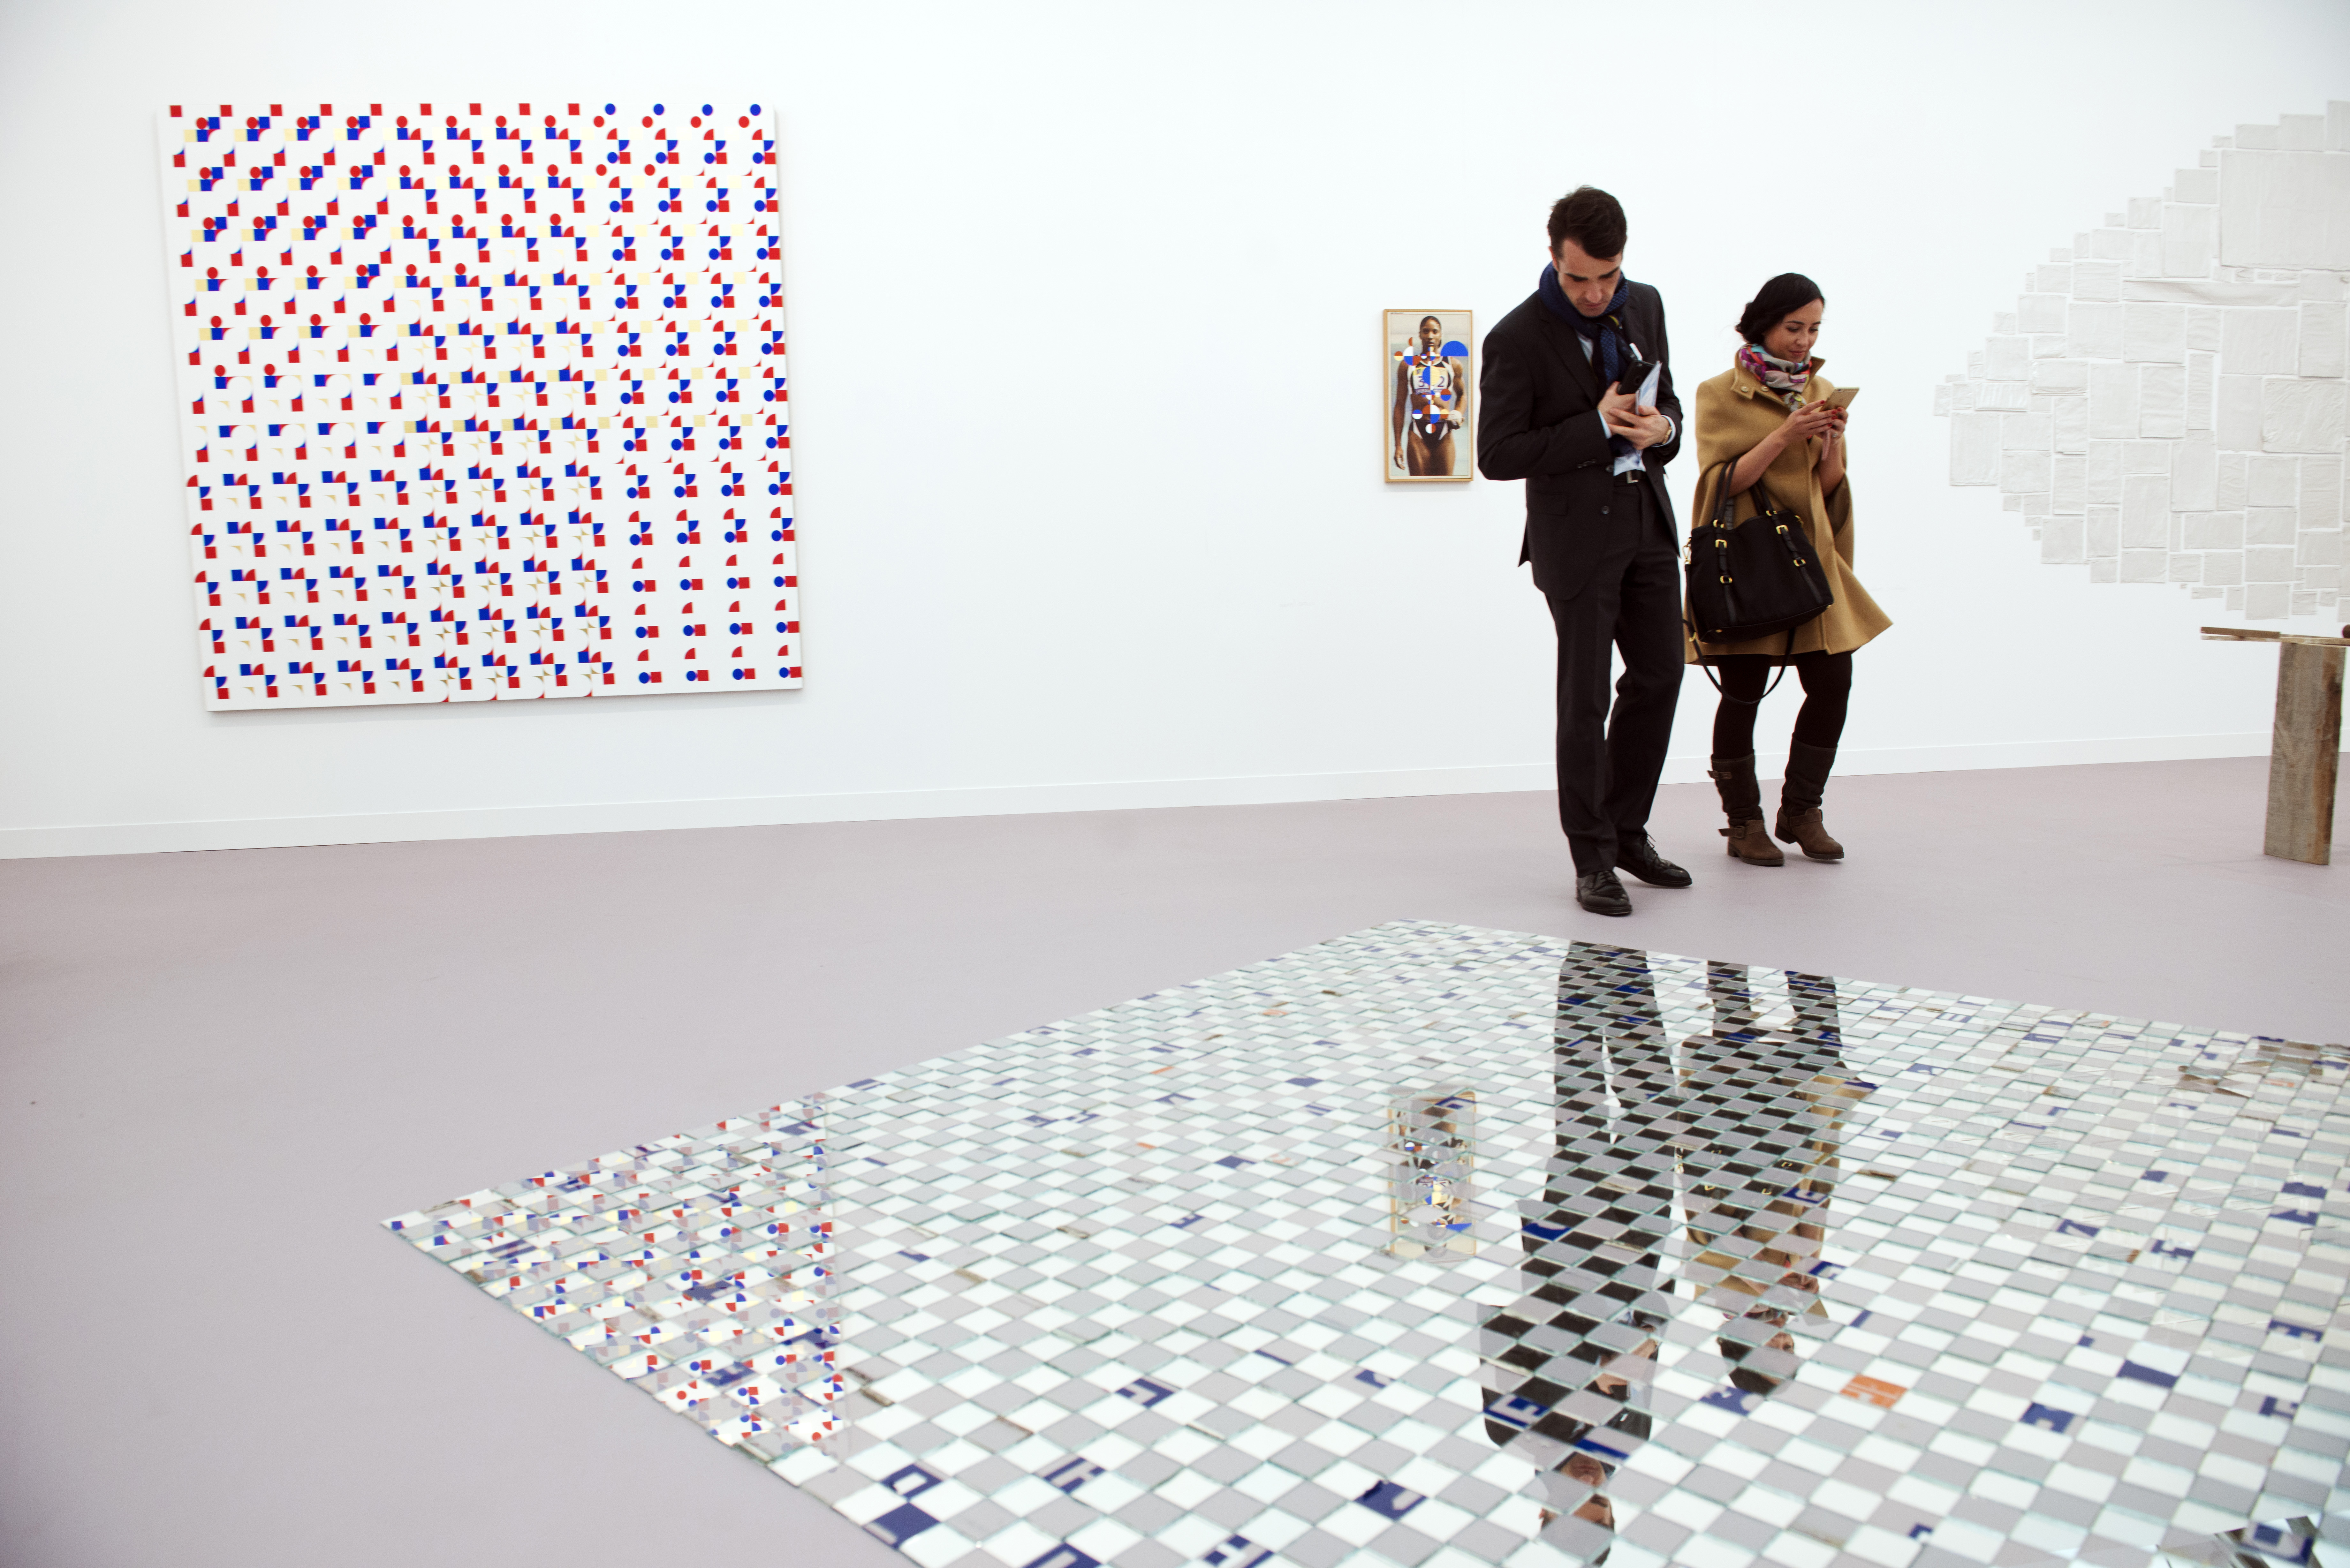 The Kurimanzutto gallery at Frieze London